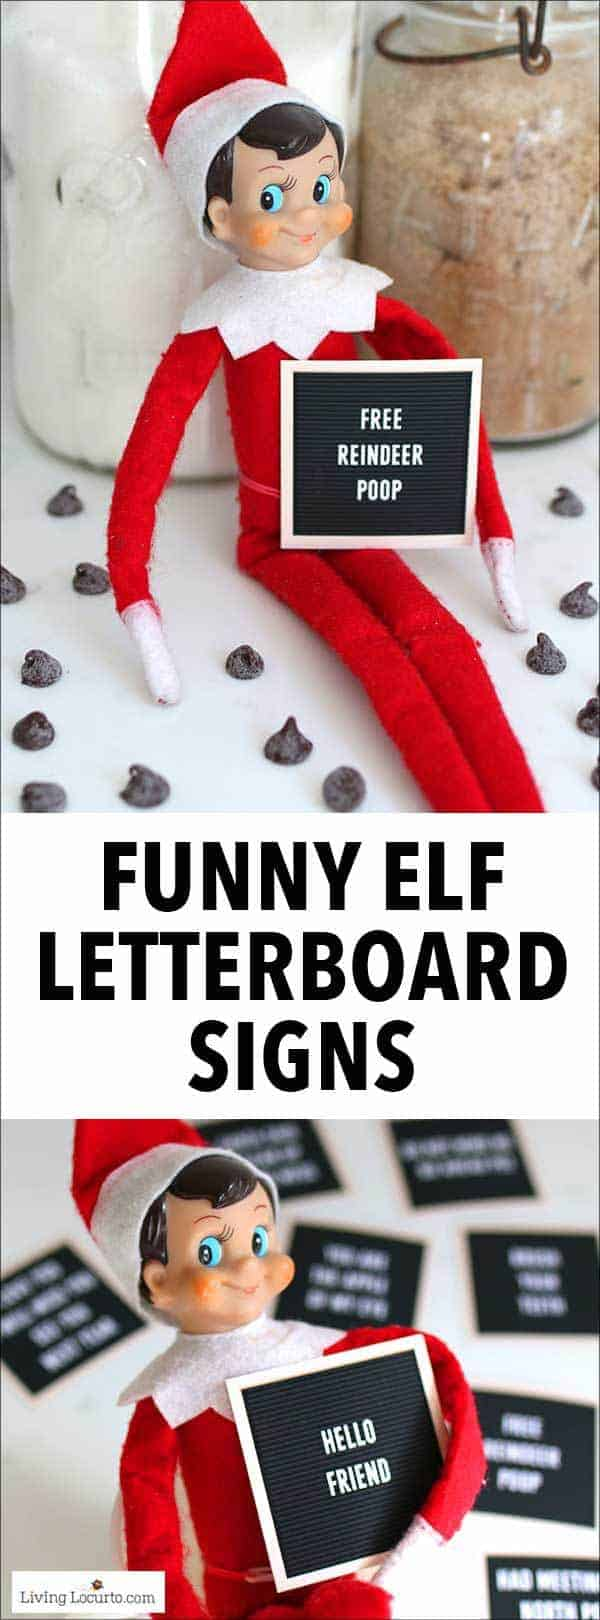 Funny Printable Elf Letter Board Signs to help your elf communicate with your kids! With cute signs for a Christmas elf arrival, departure and fun in between, these printable letter board signs give you days of hilarious ideas for your Elf on the Shelf. Original designs by Living Locurto. #printables #elf